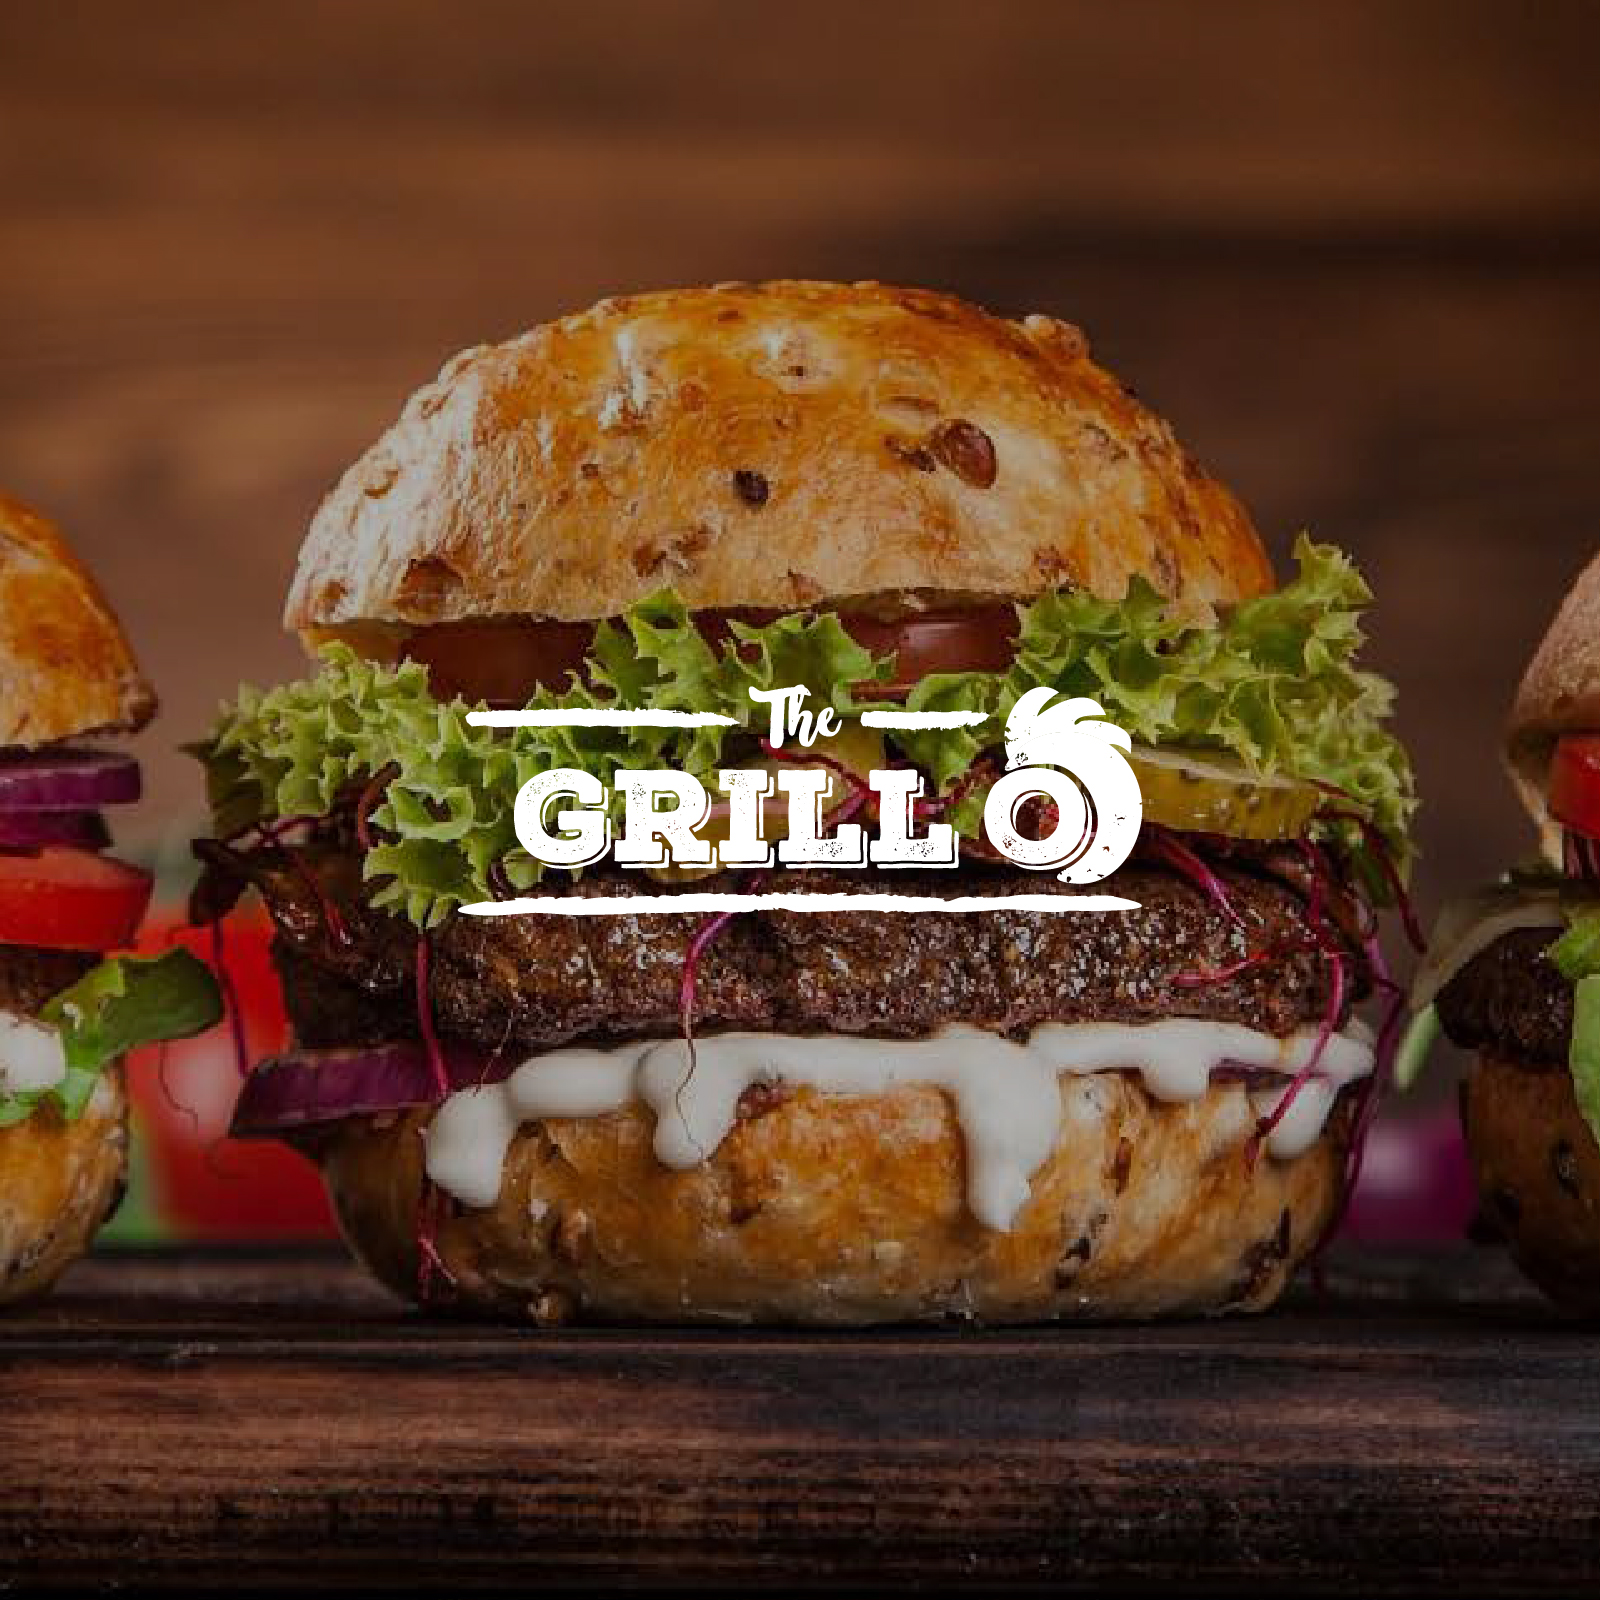 The Grill'o